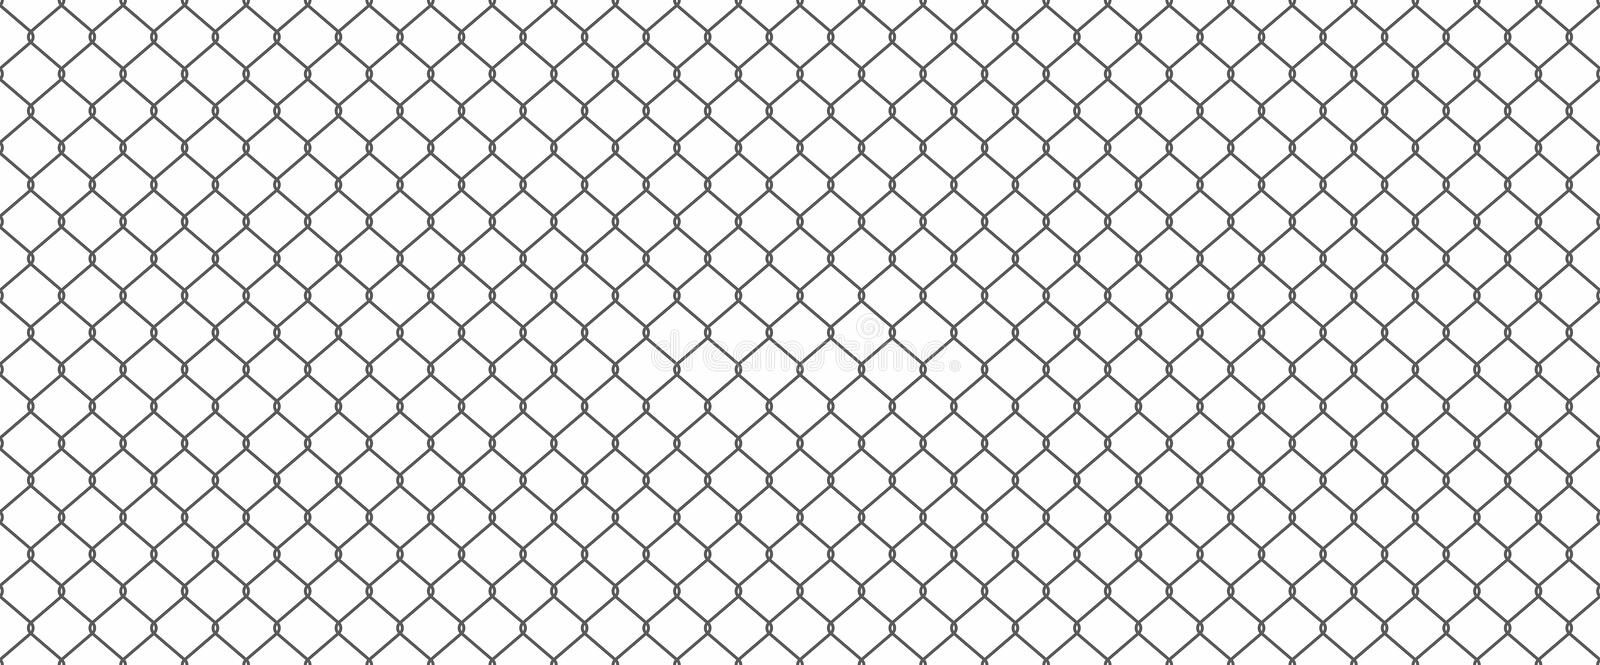 Chainlink fence. Silhouette of metal wire mesh, seamless pattern royalty free illustration